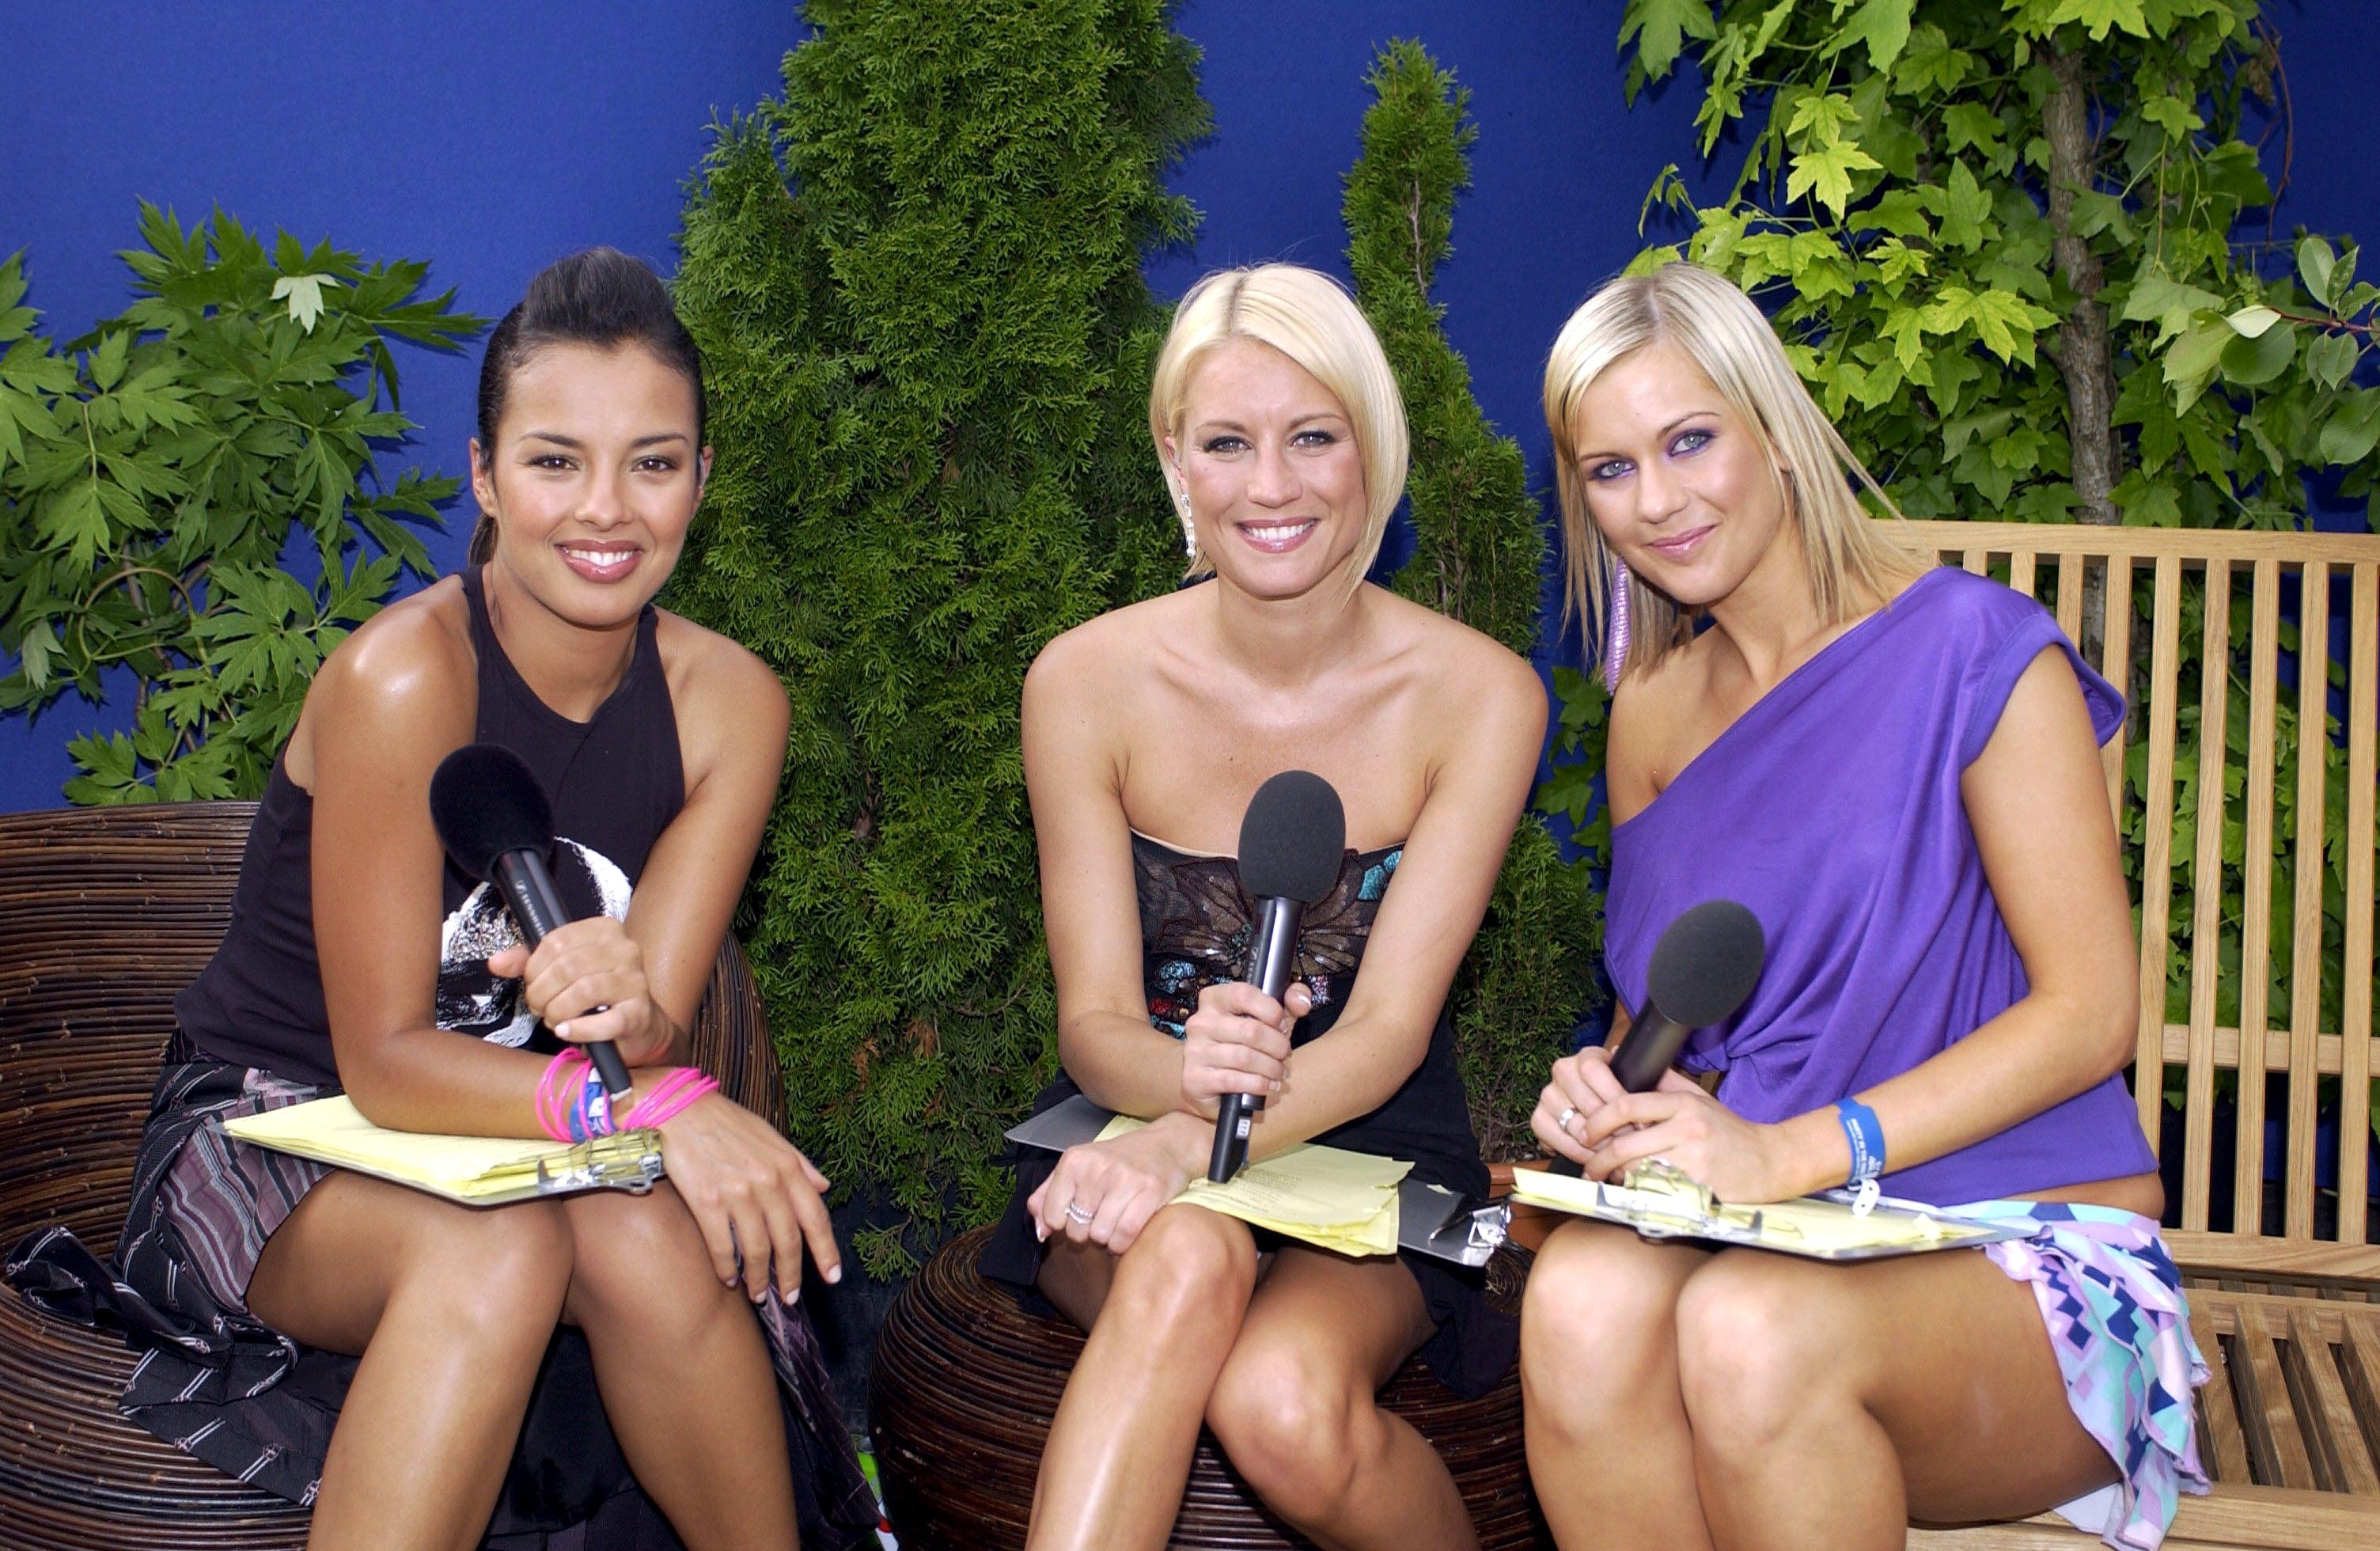 Capital Fm Party In The Park For The Princes Trust In London, Britain - 05 Jul 2003, Liz Bonnin, Denise Van Outen And Kate Lawler (Photo by Brian Rasic/Getty Images)